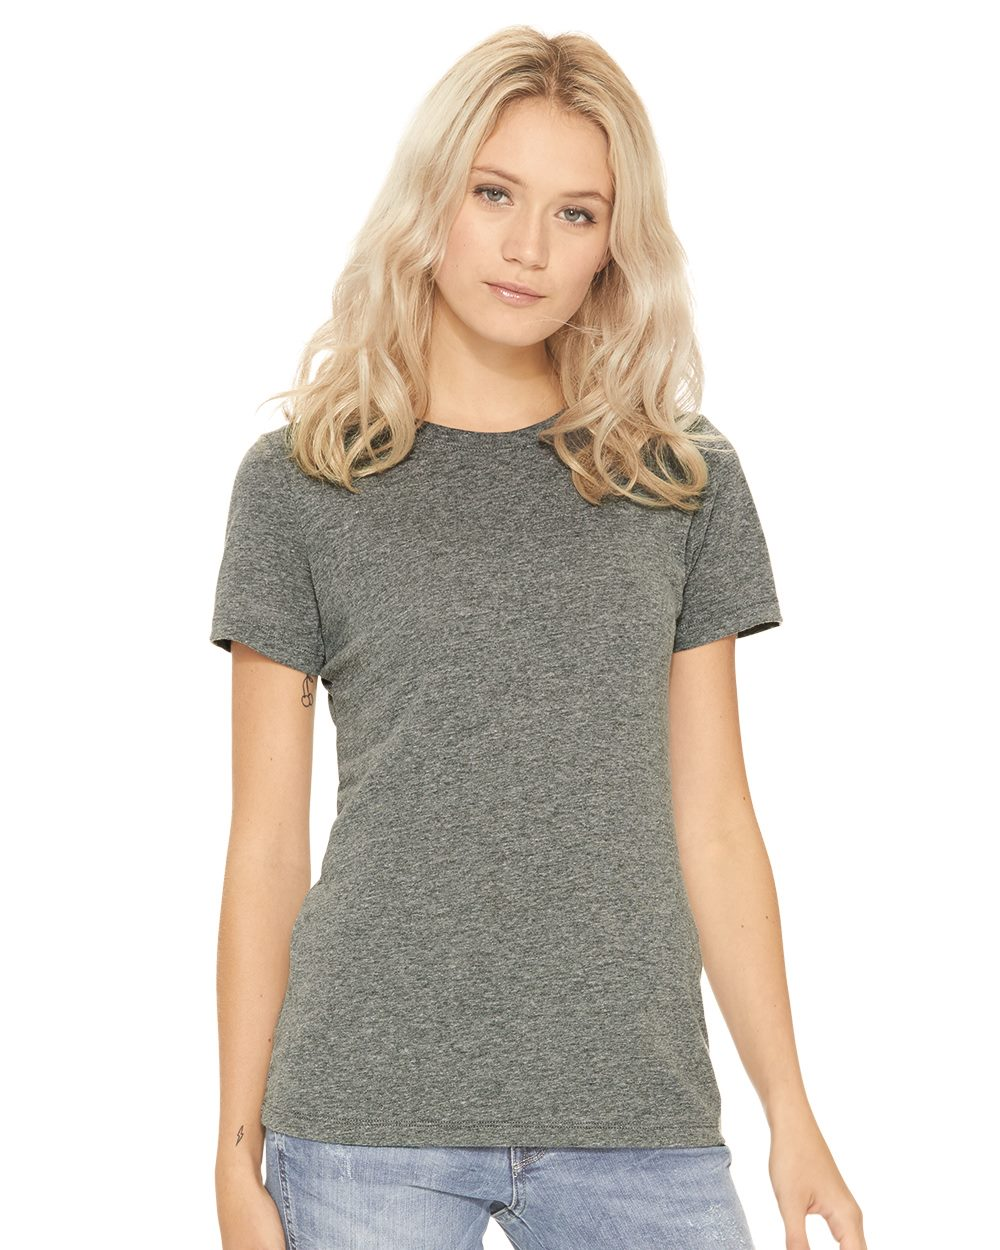 Next Level 6710 - Women's Tri-Blend Short Sleeve Crew